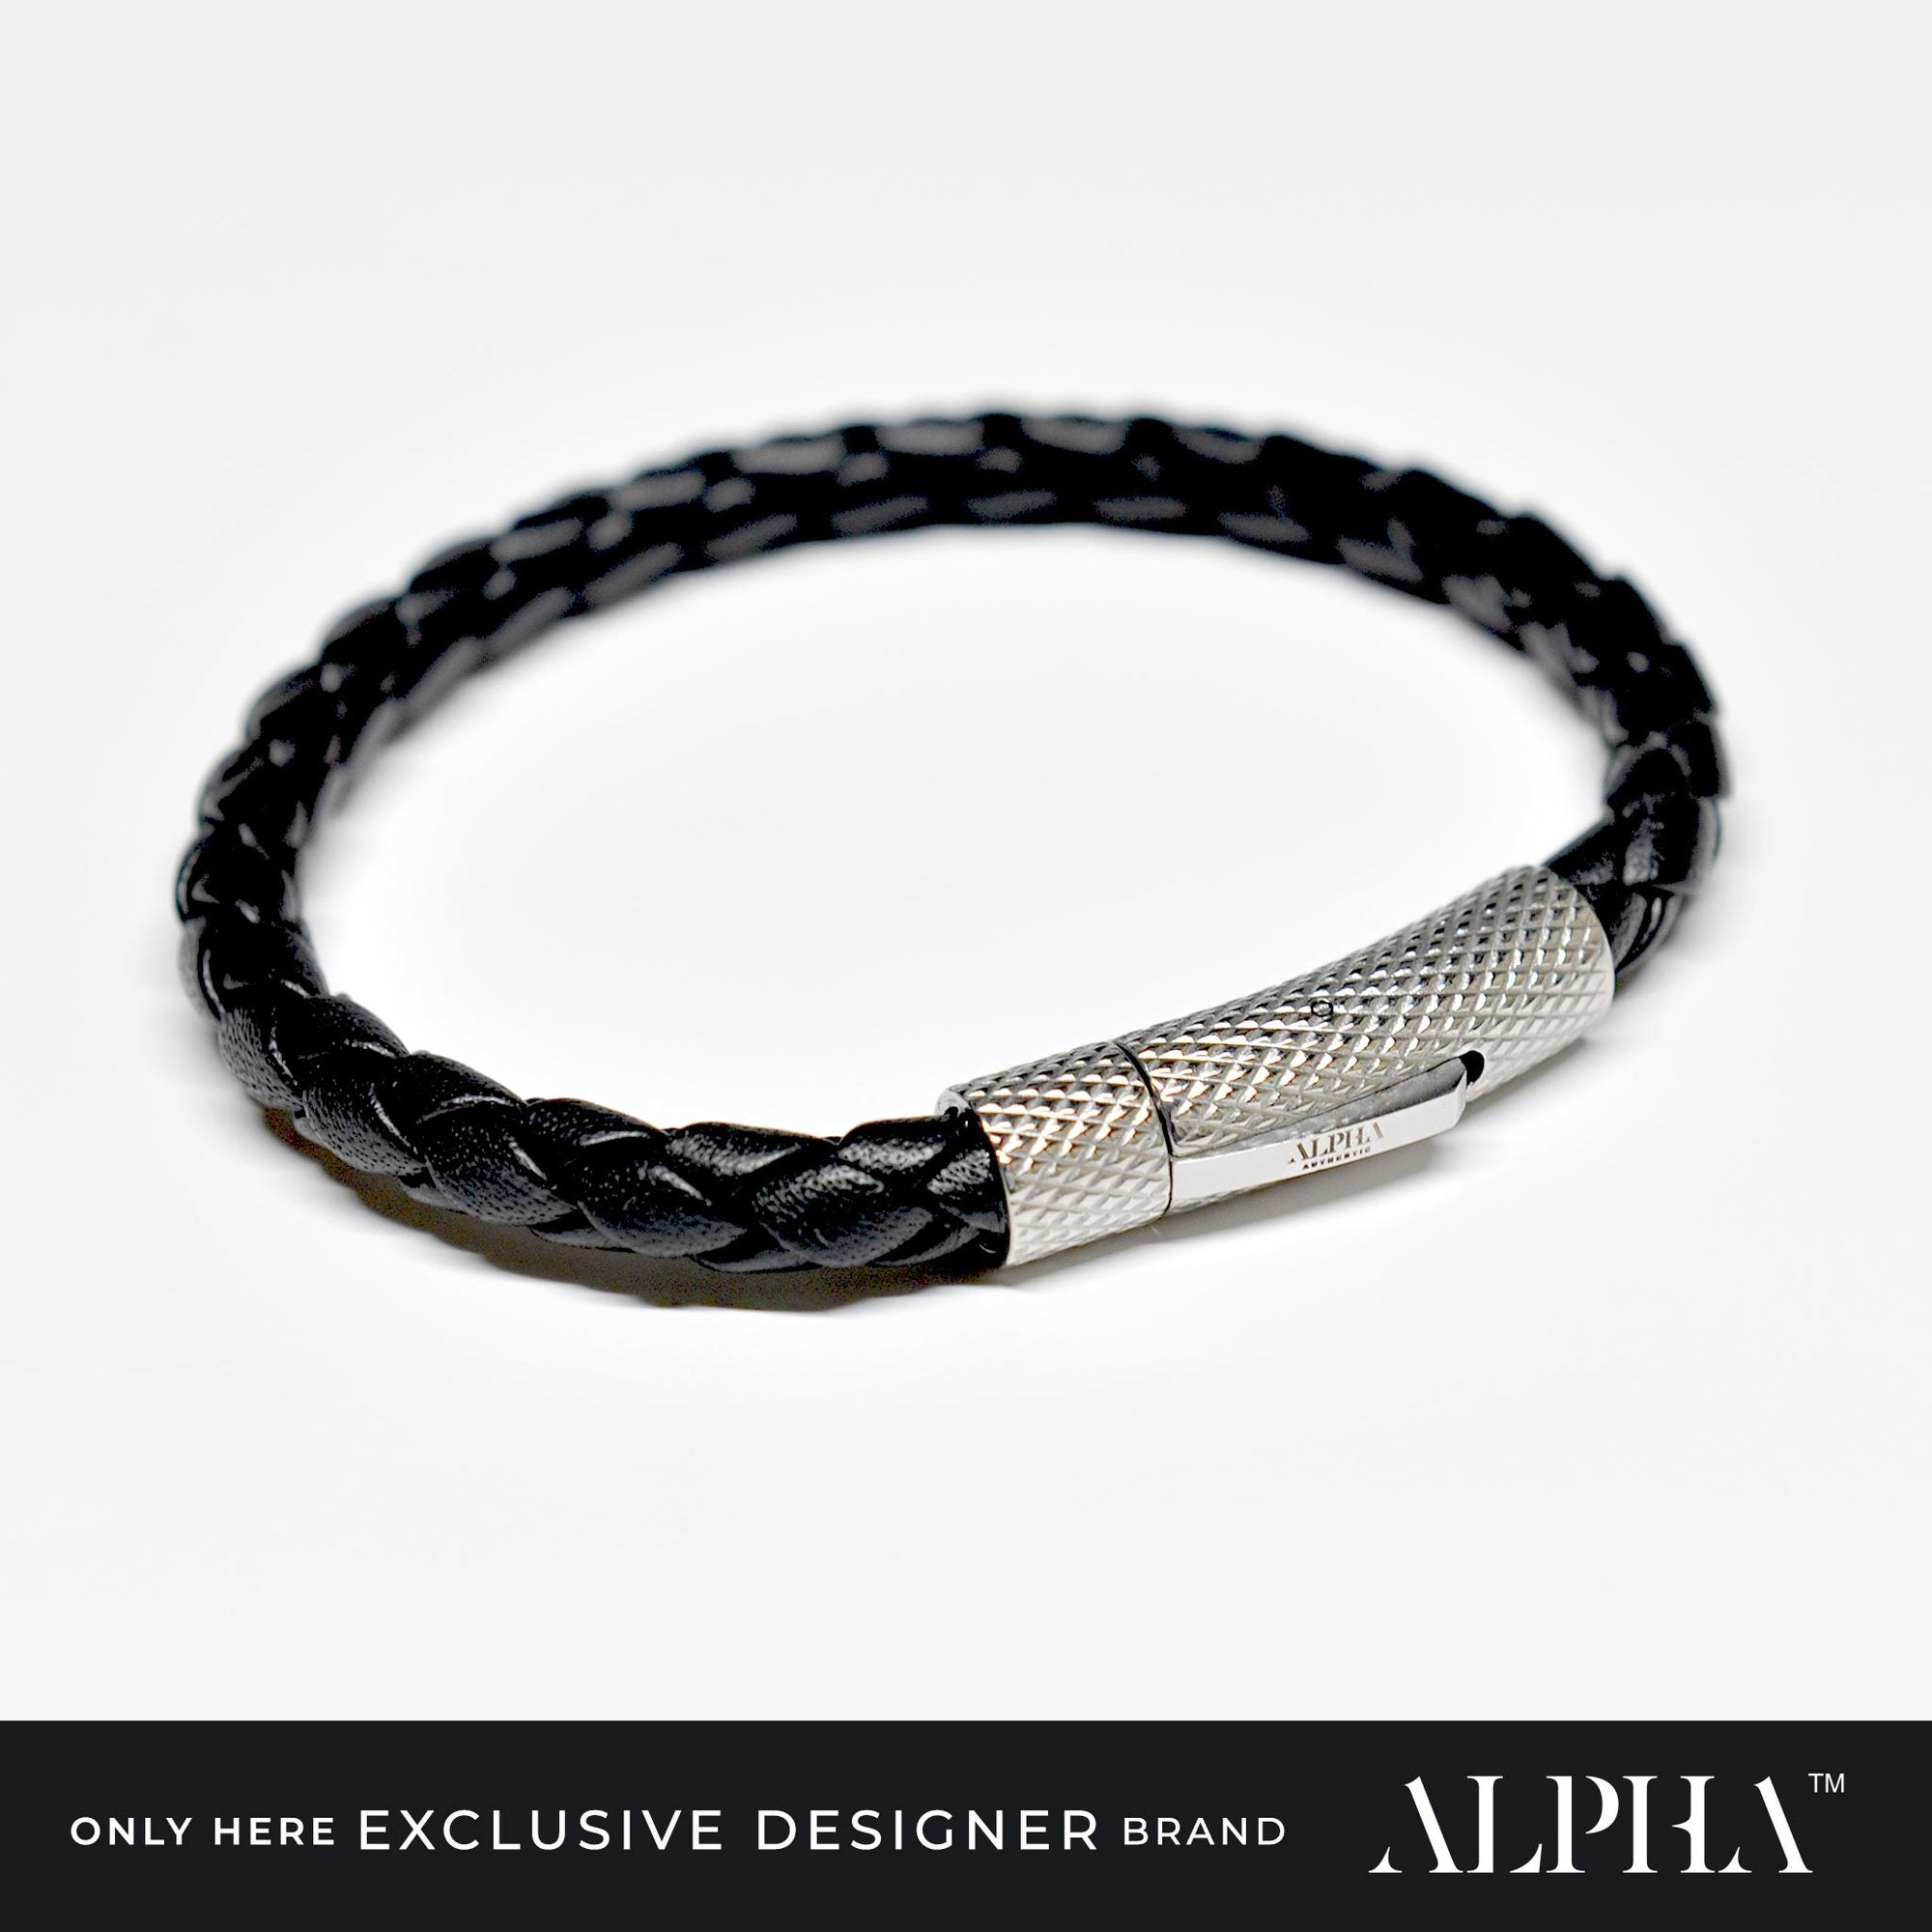 Braided Black Leather Bracelet